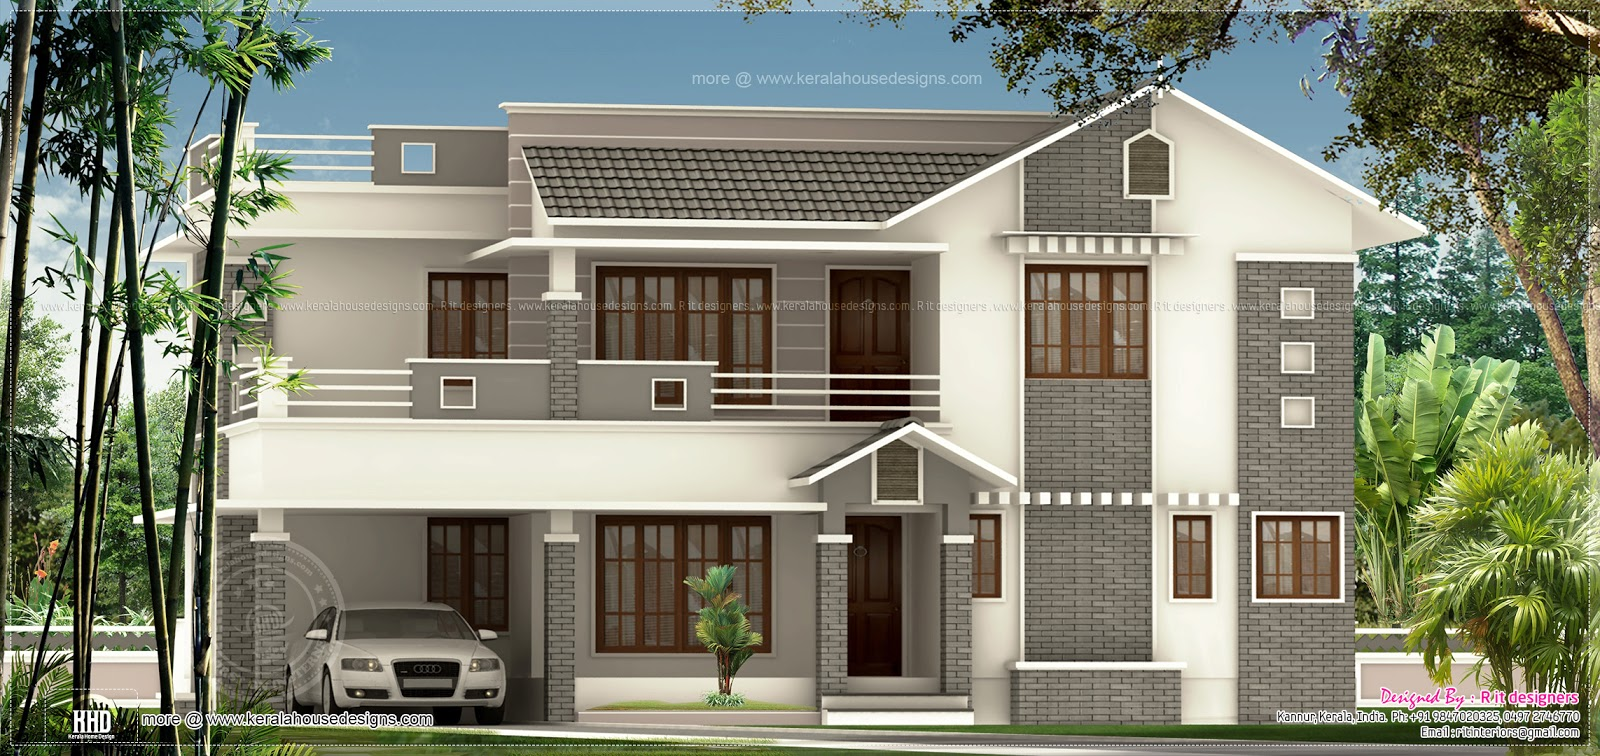 feet 3 bedroom exterior home kerala home design and floor plans